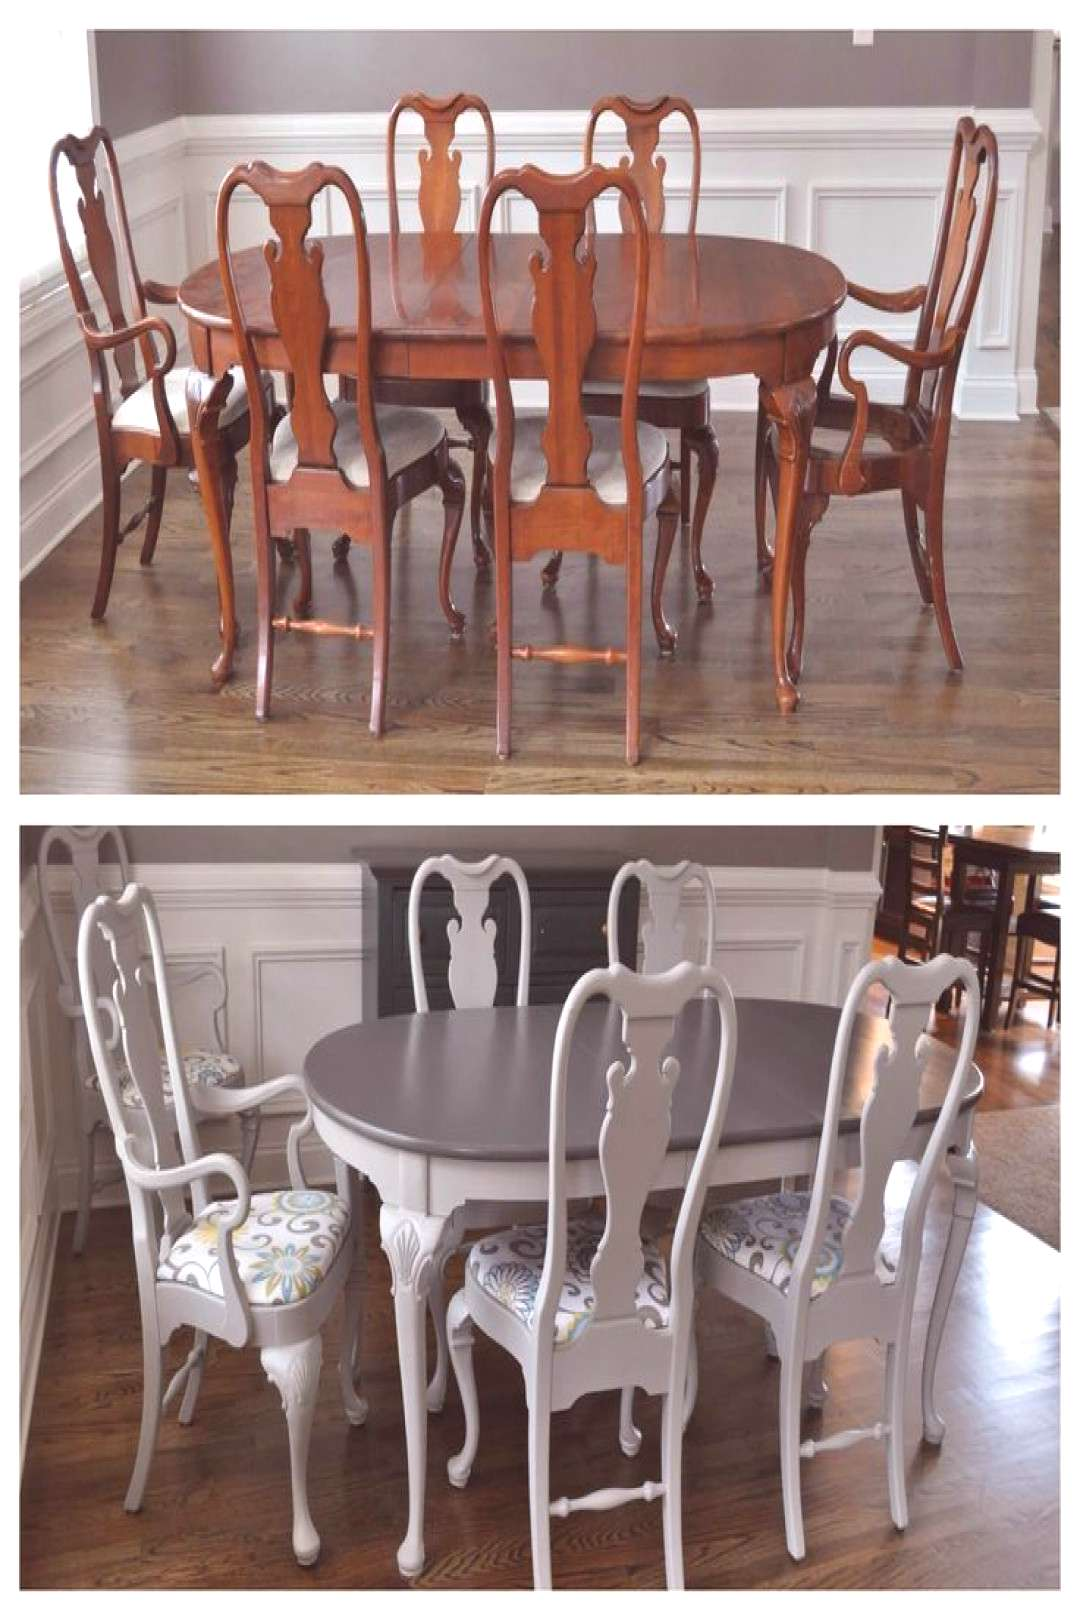 Furniture and Cabinet Paint Dining Set Ideas of Dining Rethunk Junk dining room maker over using